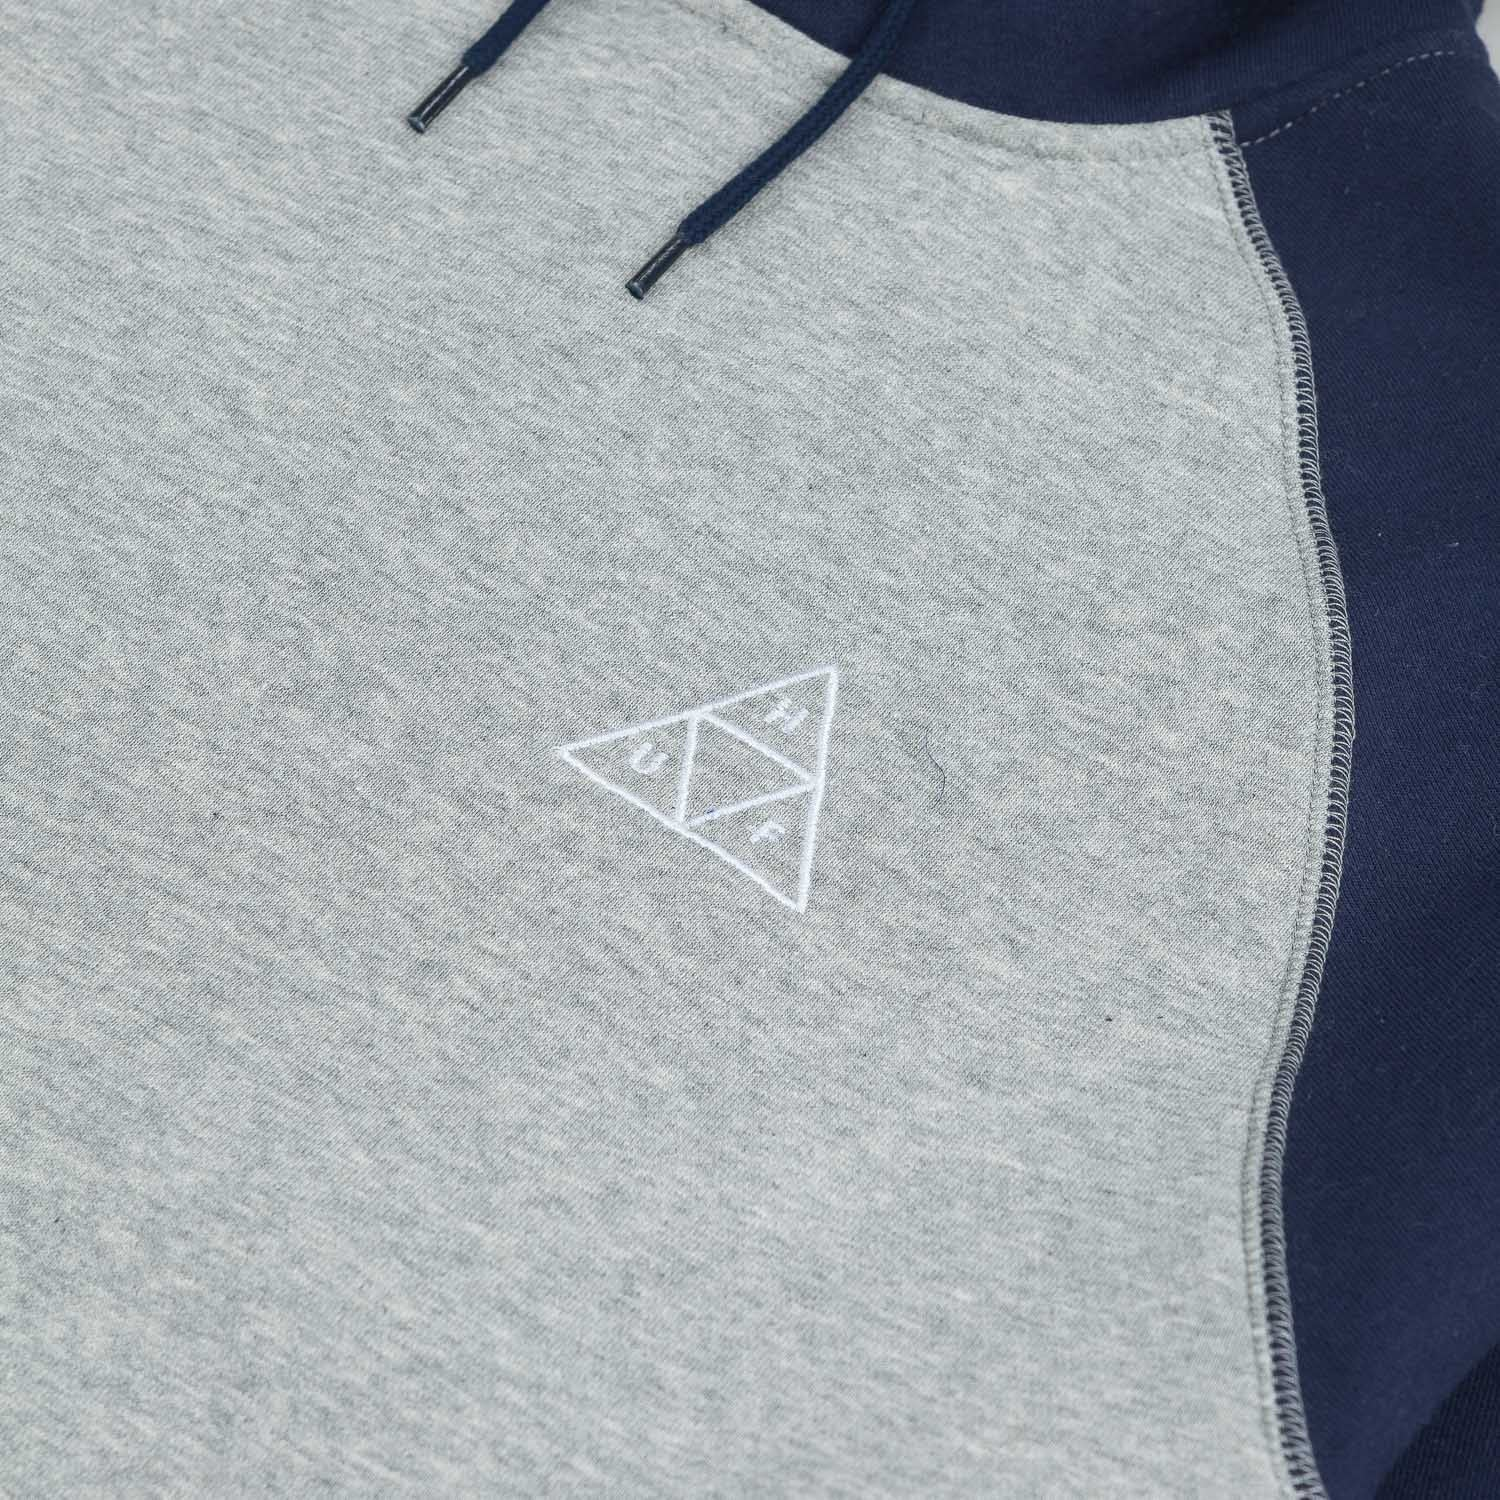 HUF Triple Triangle Raglan Hooded Sweatshirt - Navy / Grey Heather